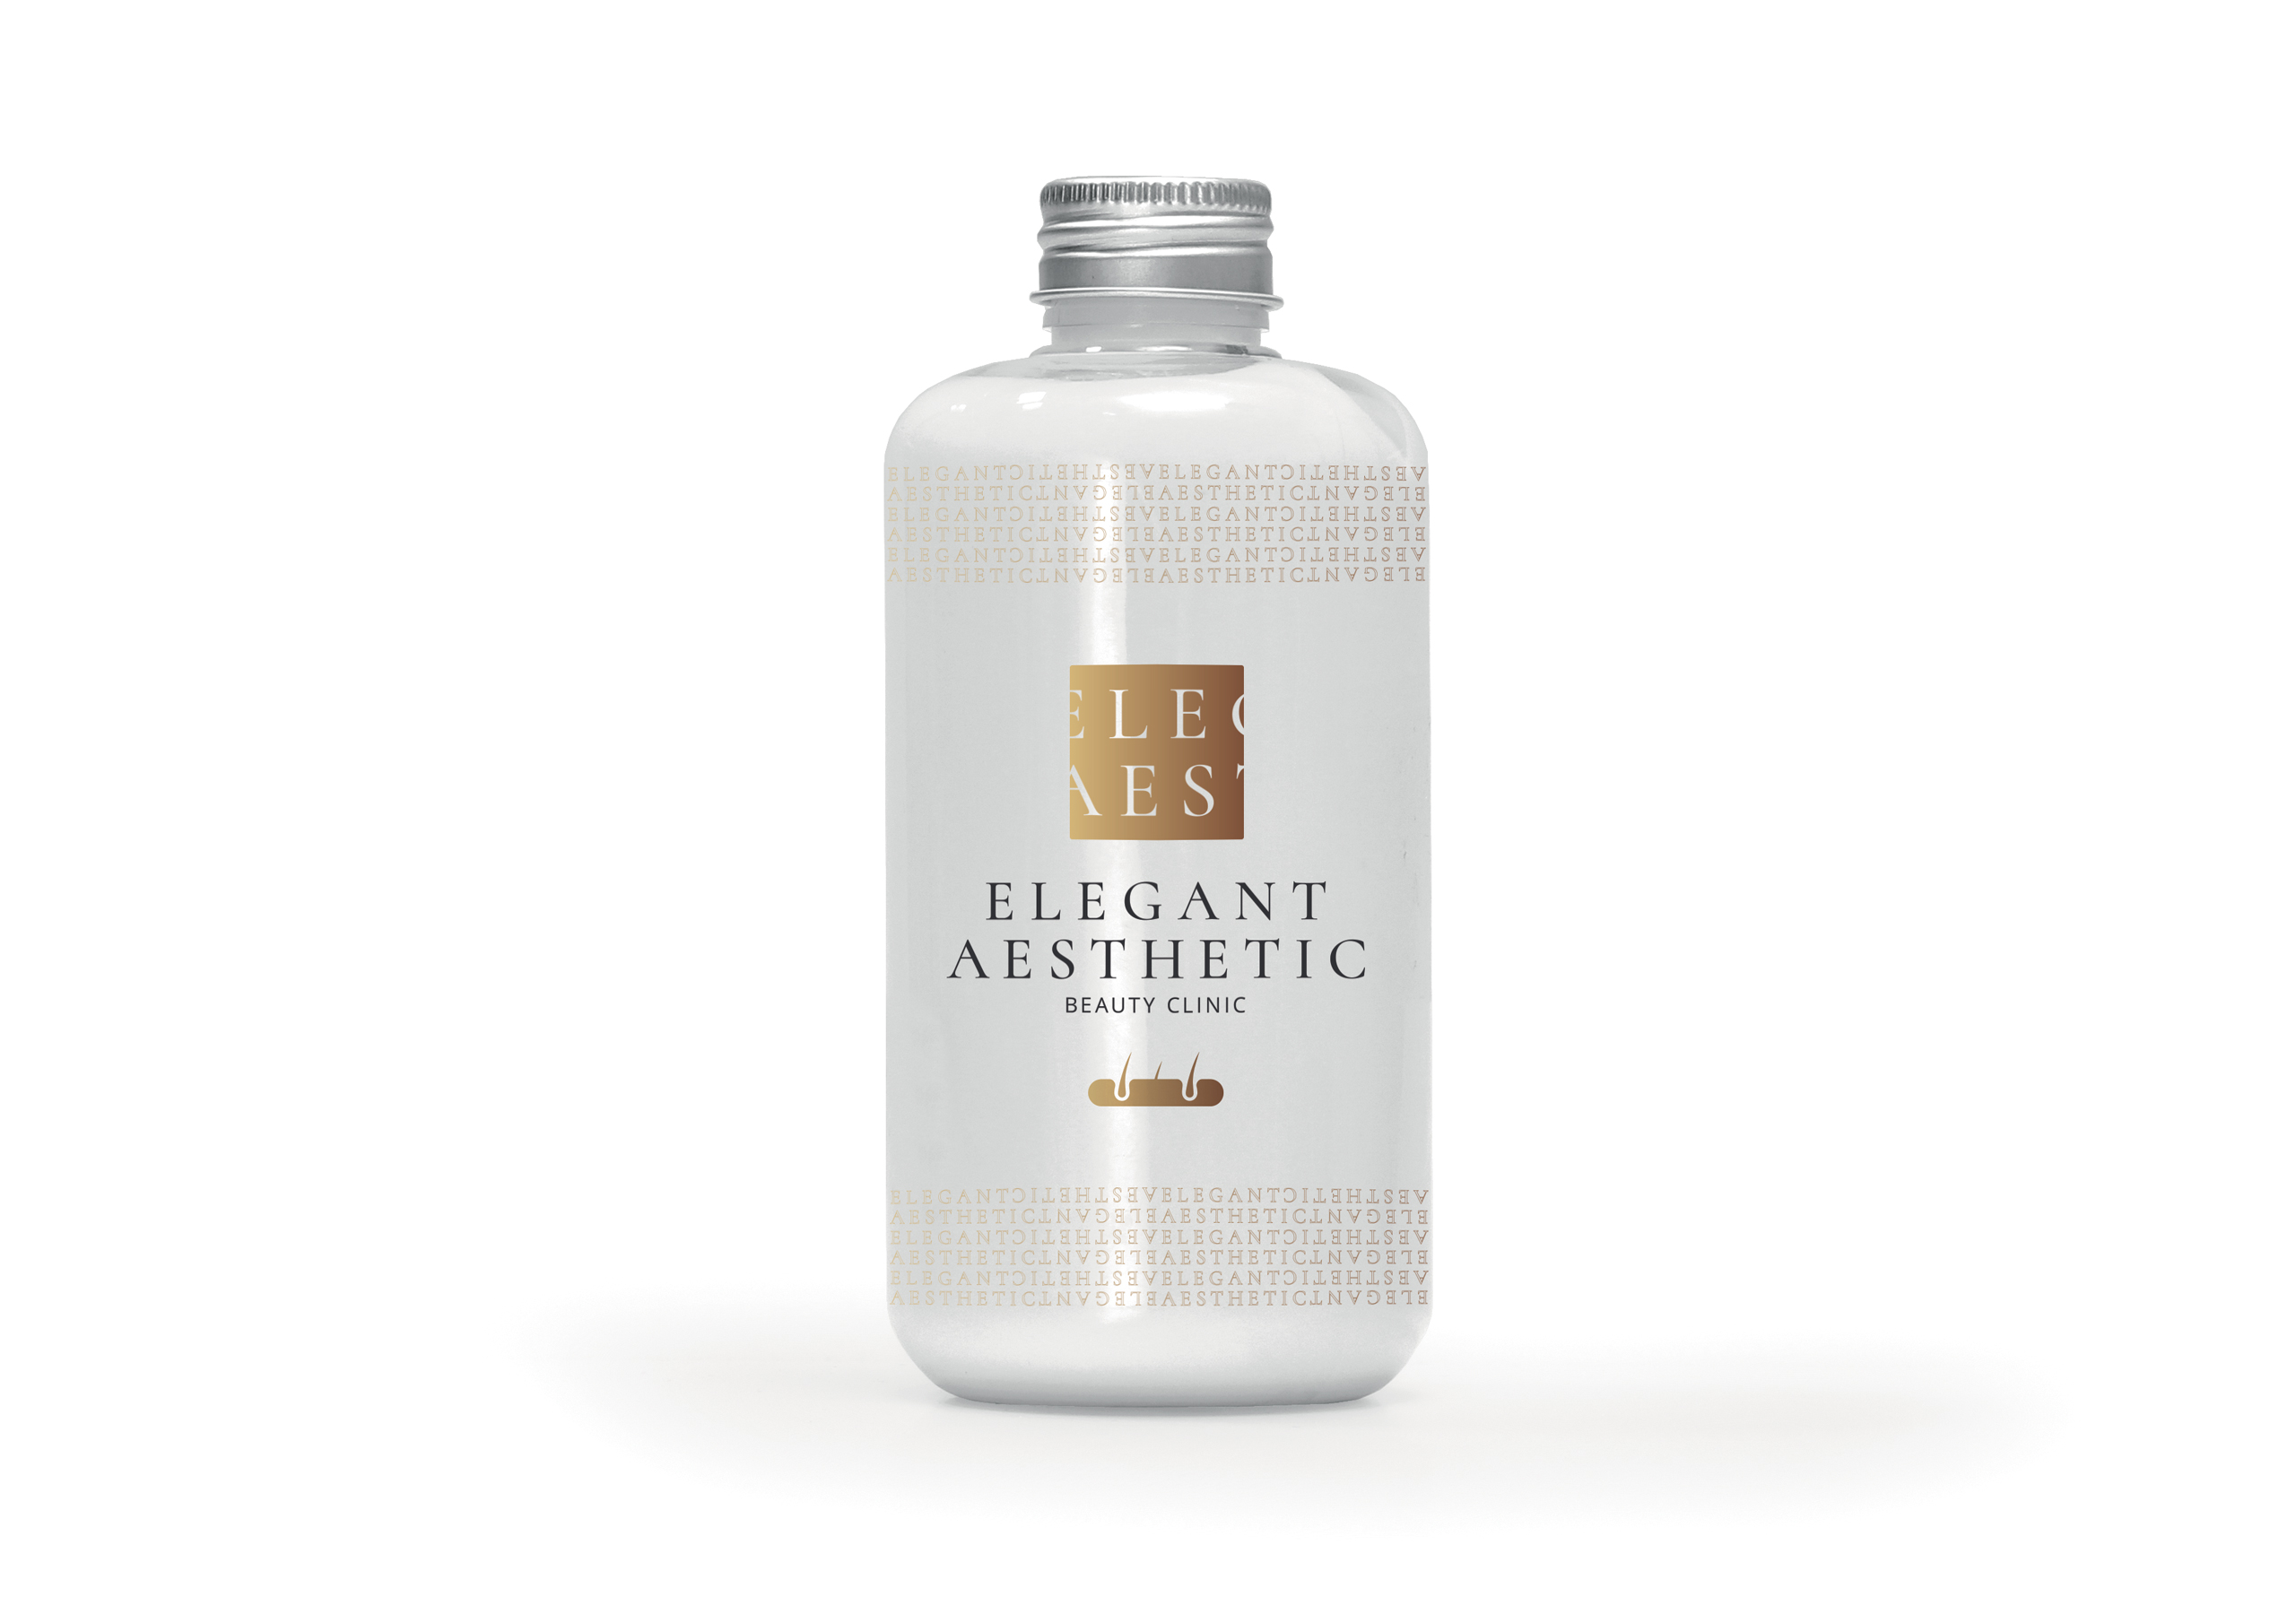 DOSE_Design_and_Marketing_Elegant_Aesthetic_Bottle_Concept